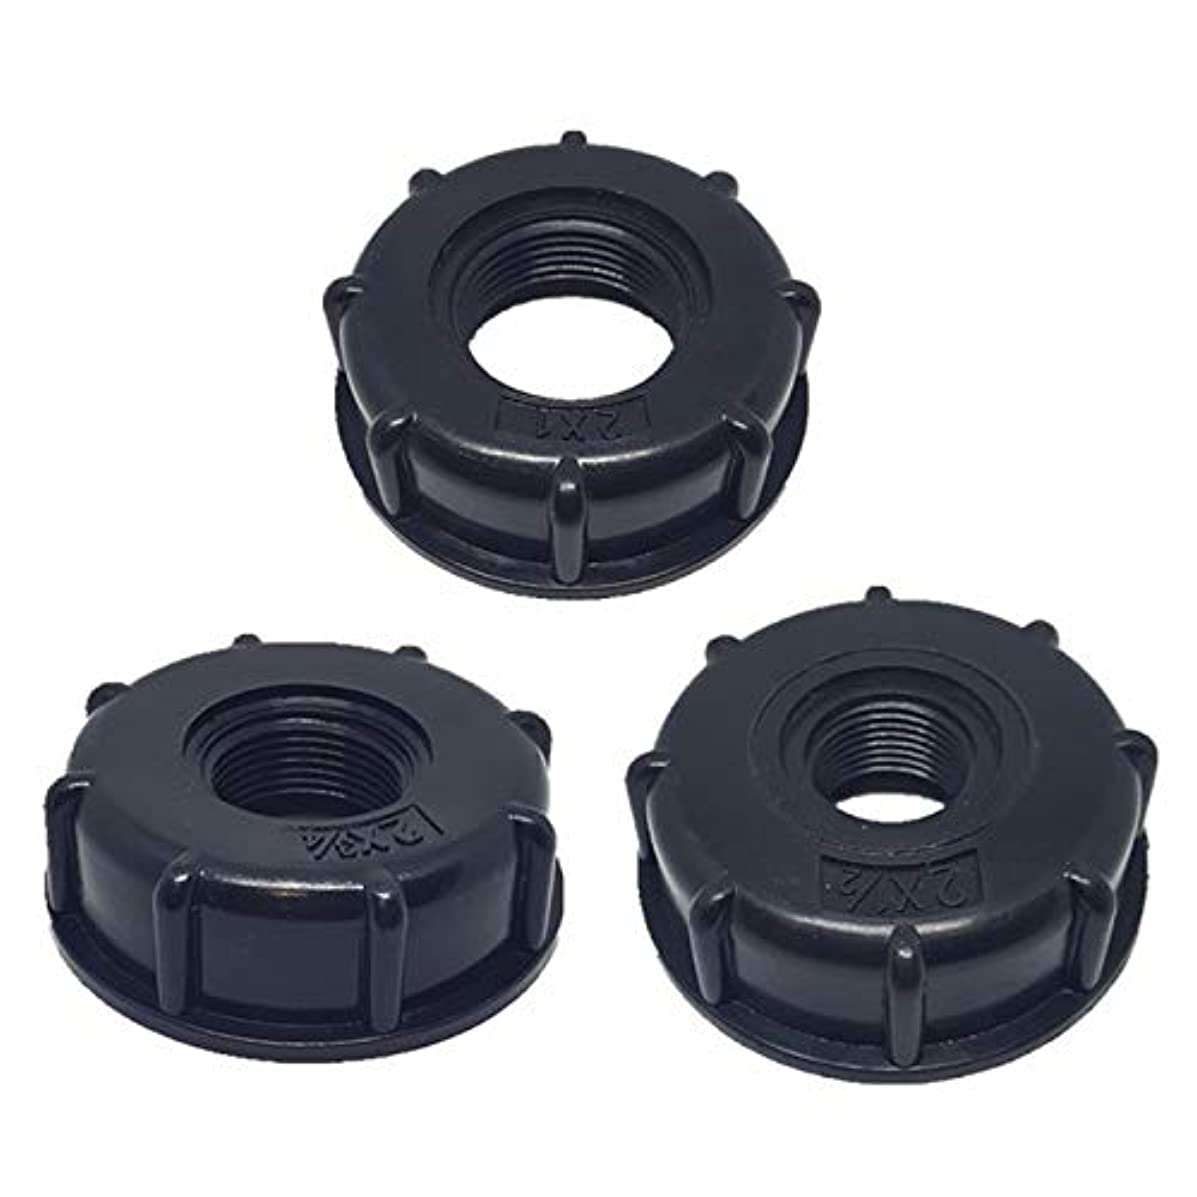 Garden Water Connectors, 1/2 Inch 3/4 Inch 1 Inch Thread Tank Adapter Tap Connector Replacement Valve Fitting for Home Garden Water Connectors